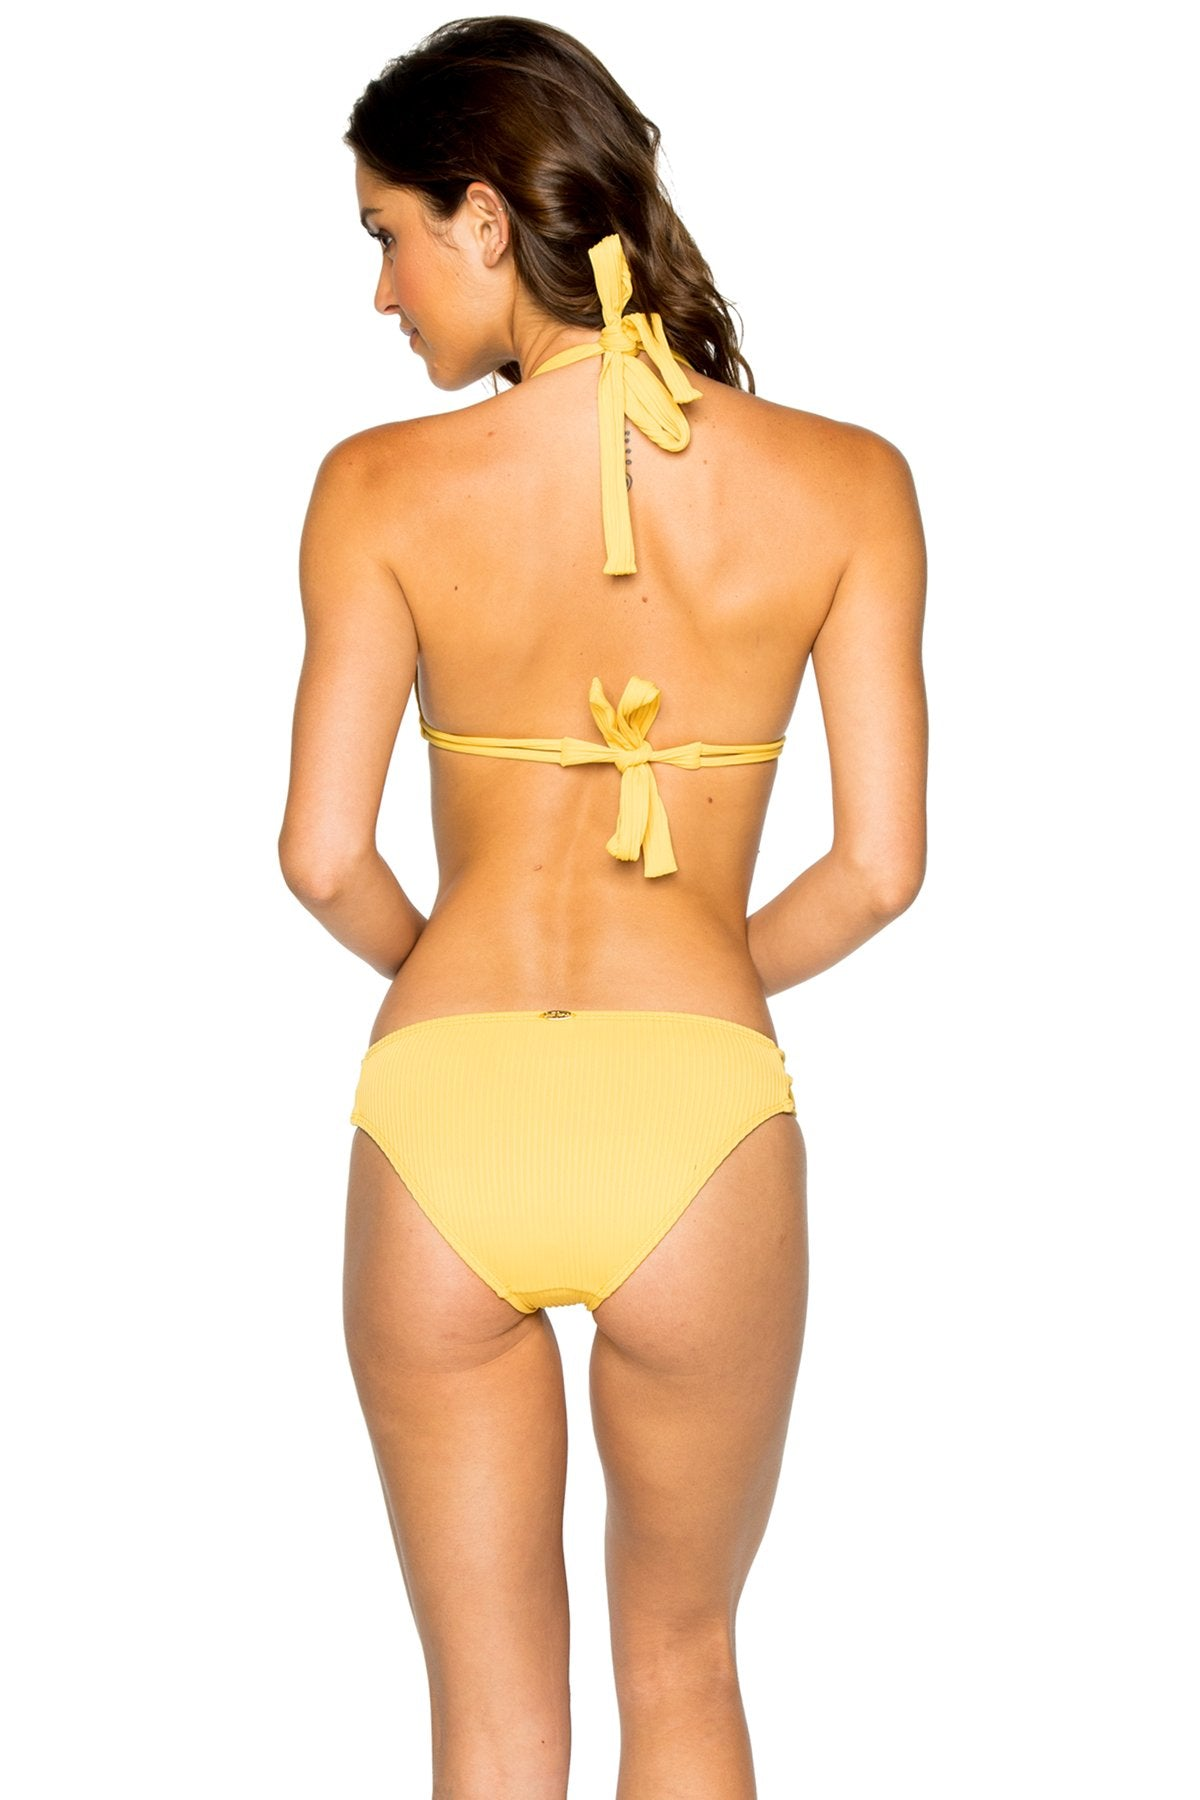 COSTA DEL SOL - Triangle Halter Top & Full Bottom • Banana